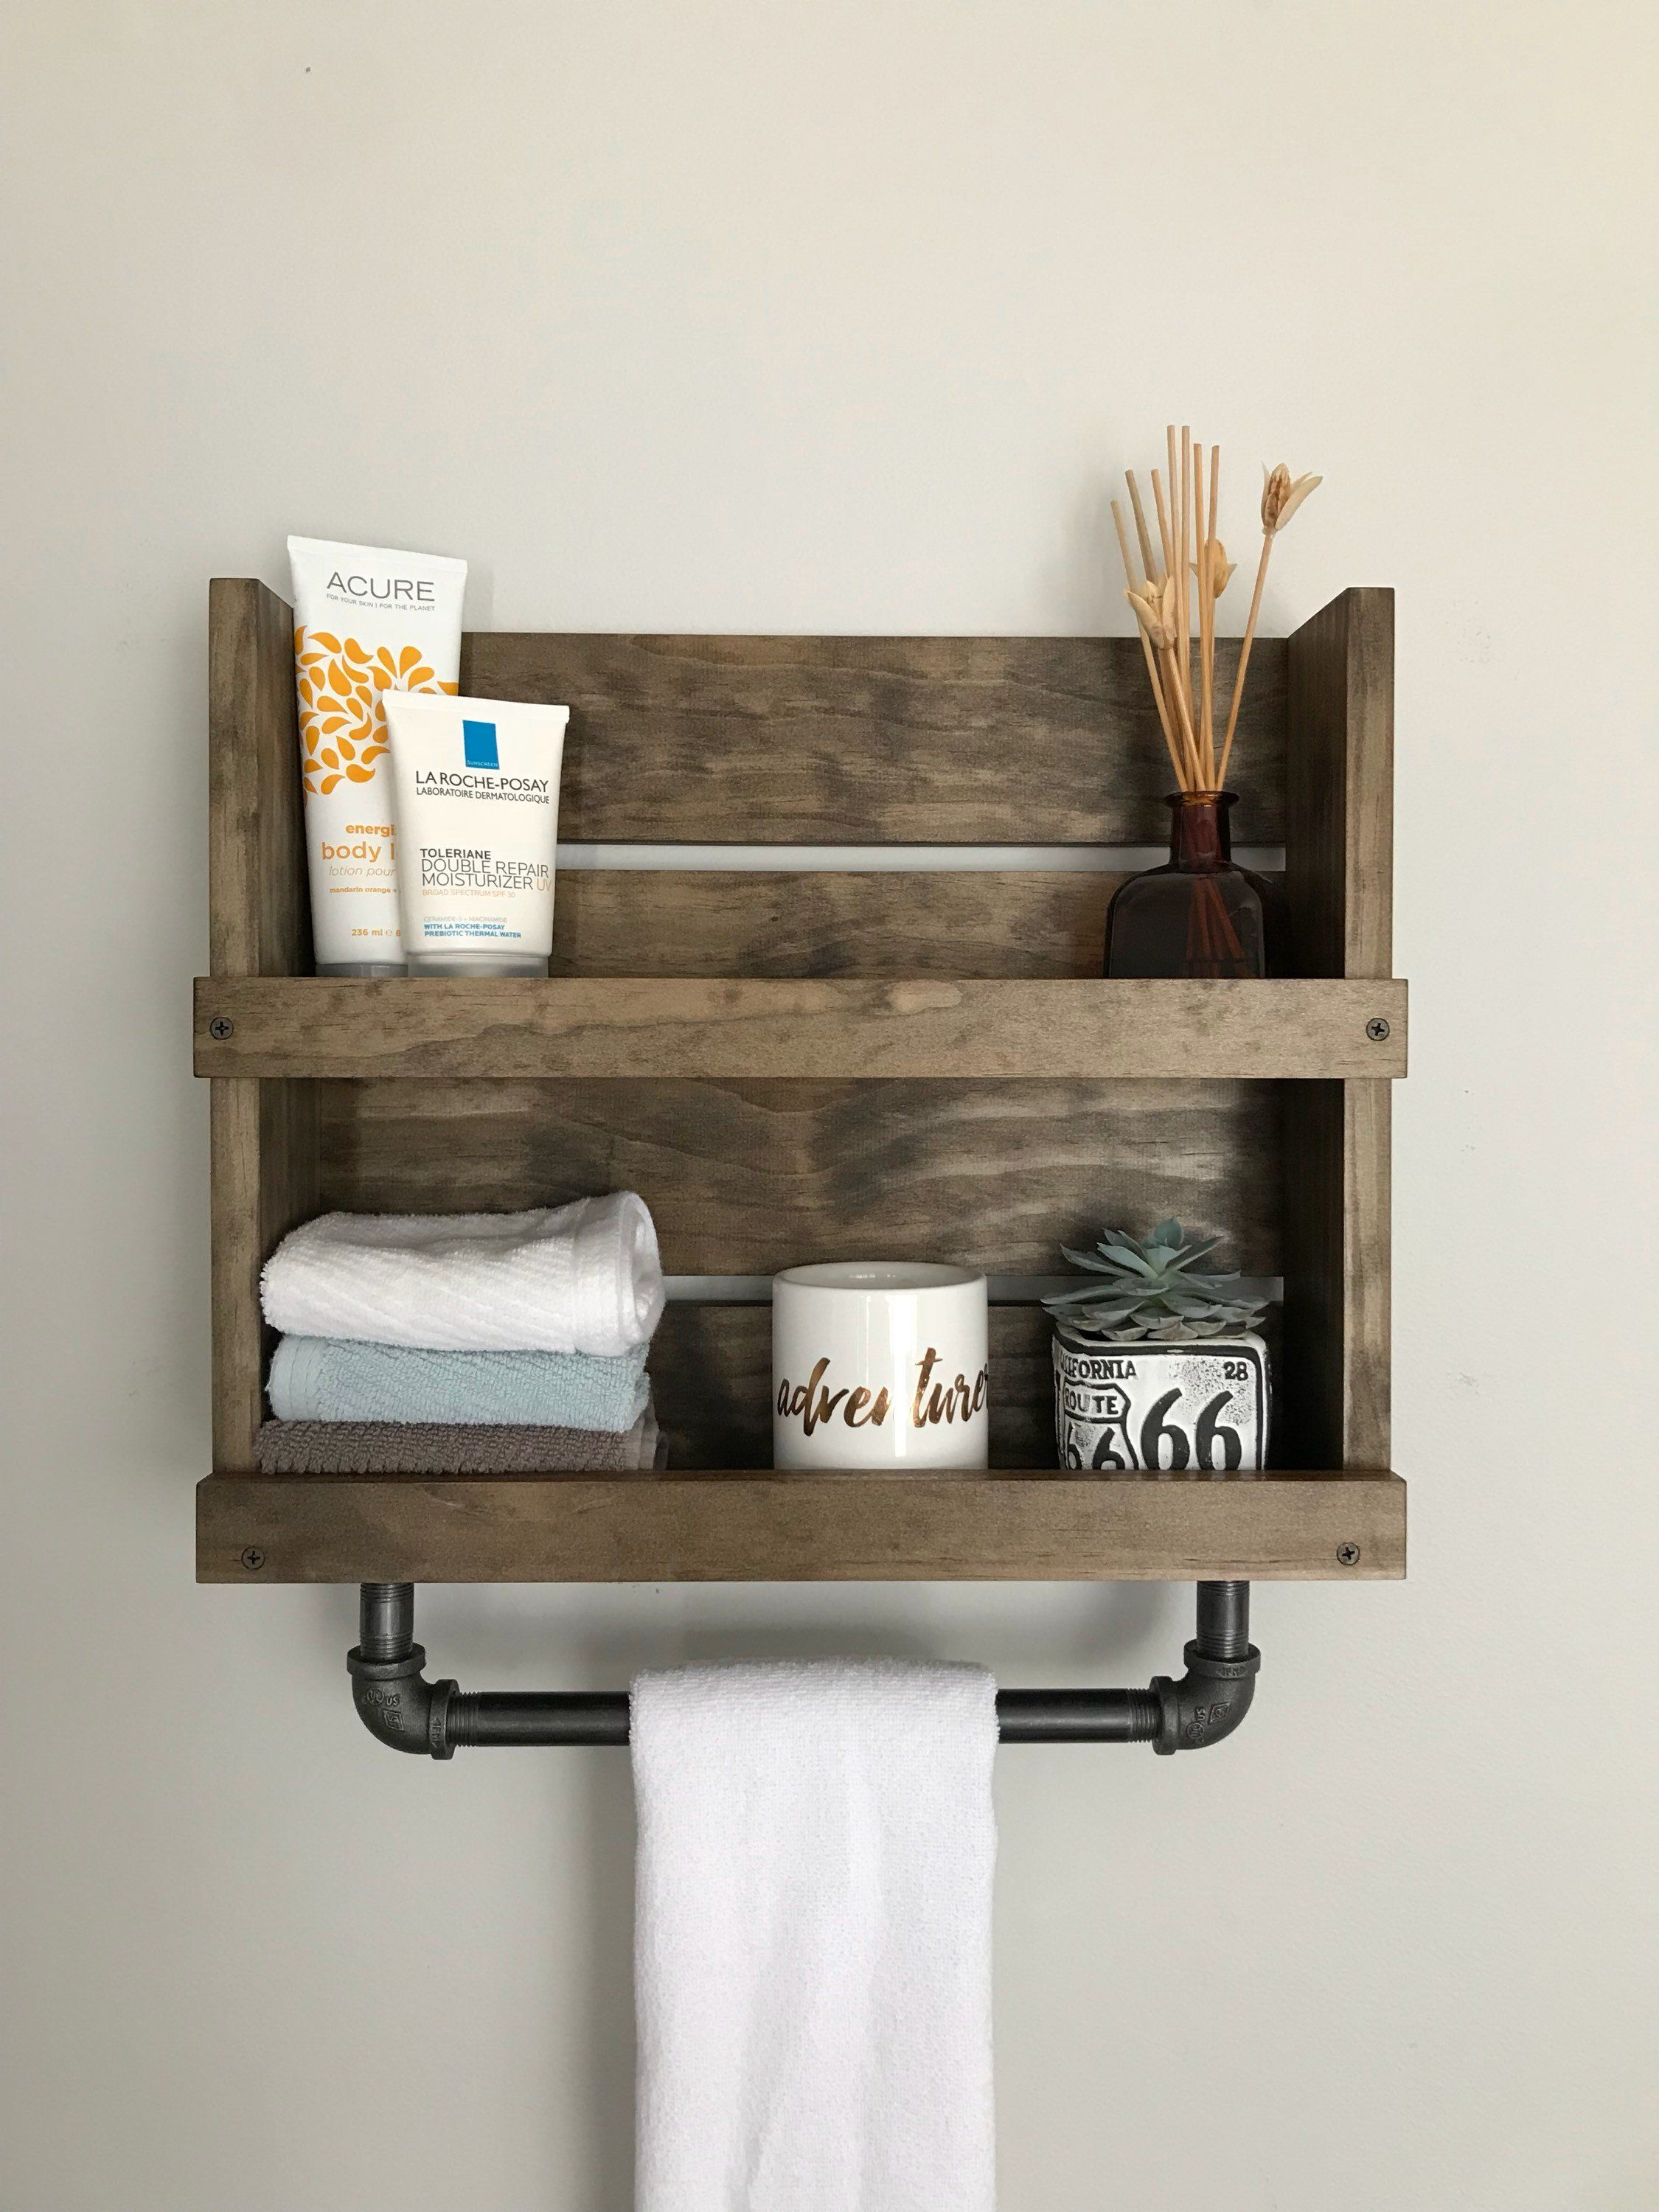 Shelf With Towel Bar For Modern Rustic Bathroom Industrial Bathroom Shelf Quality Pine Ba Bathroom Wall Shelves Bathroom Wood Shelves Industrial Bathroom Decor